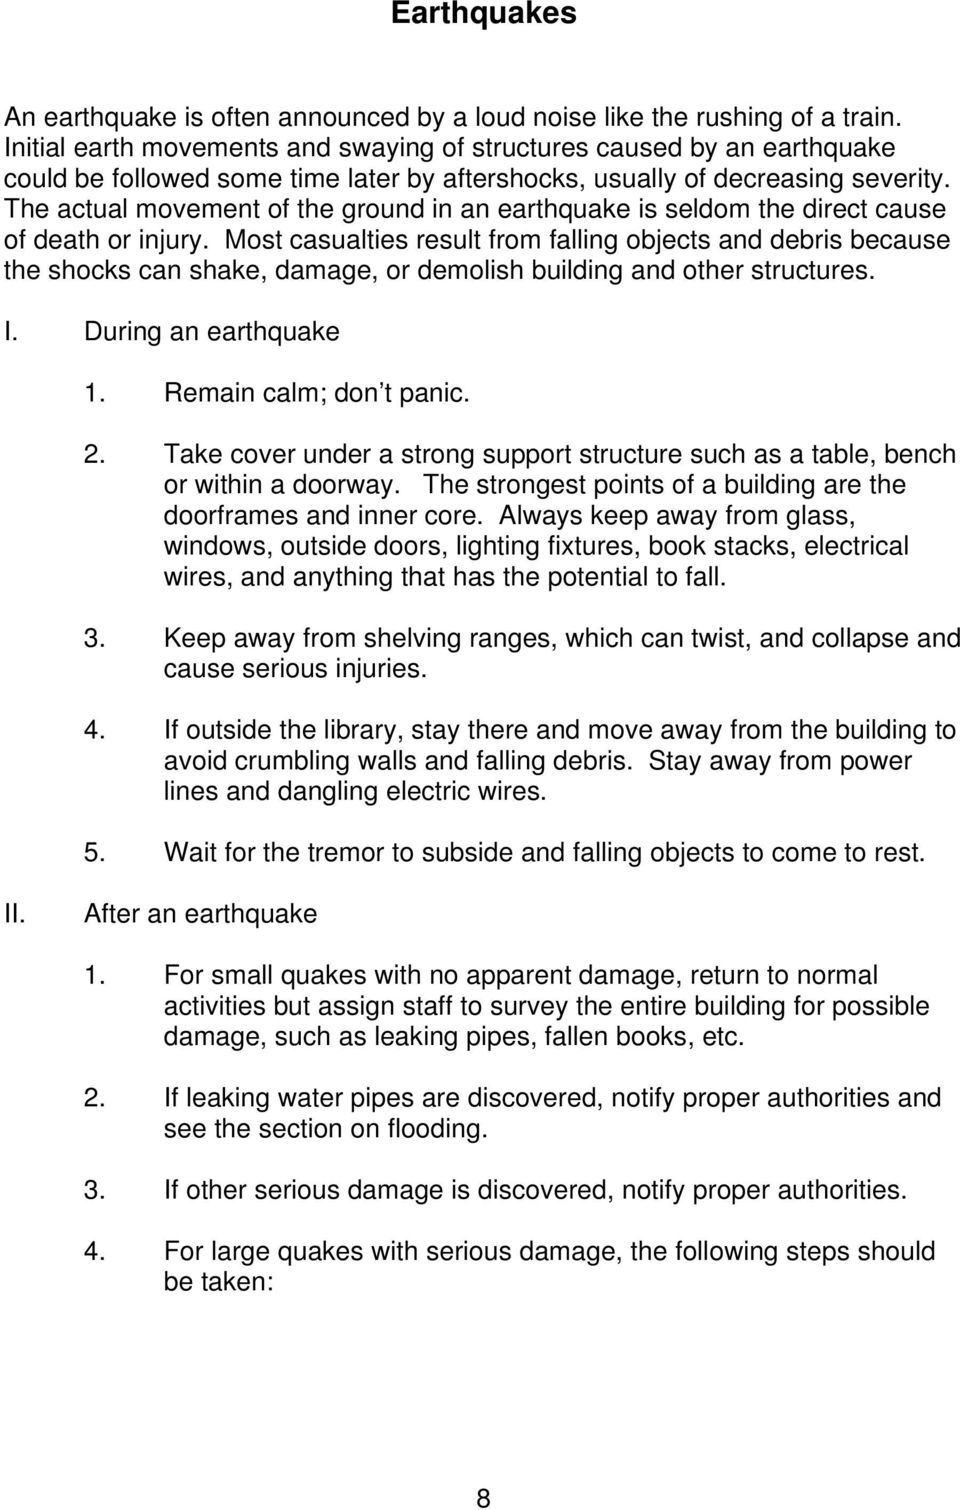 The actual movement of the ground in an earthquake is seldom the direct cause of death or injury.